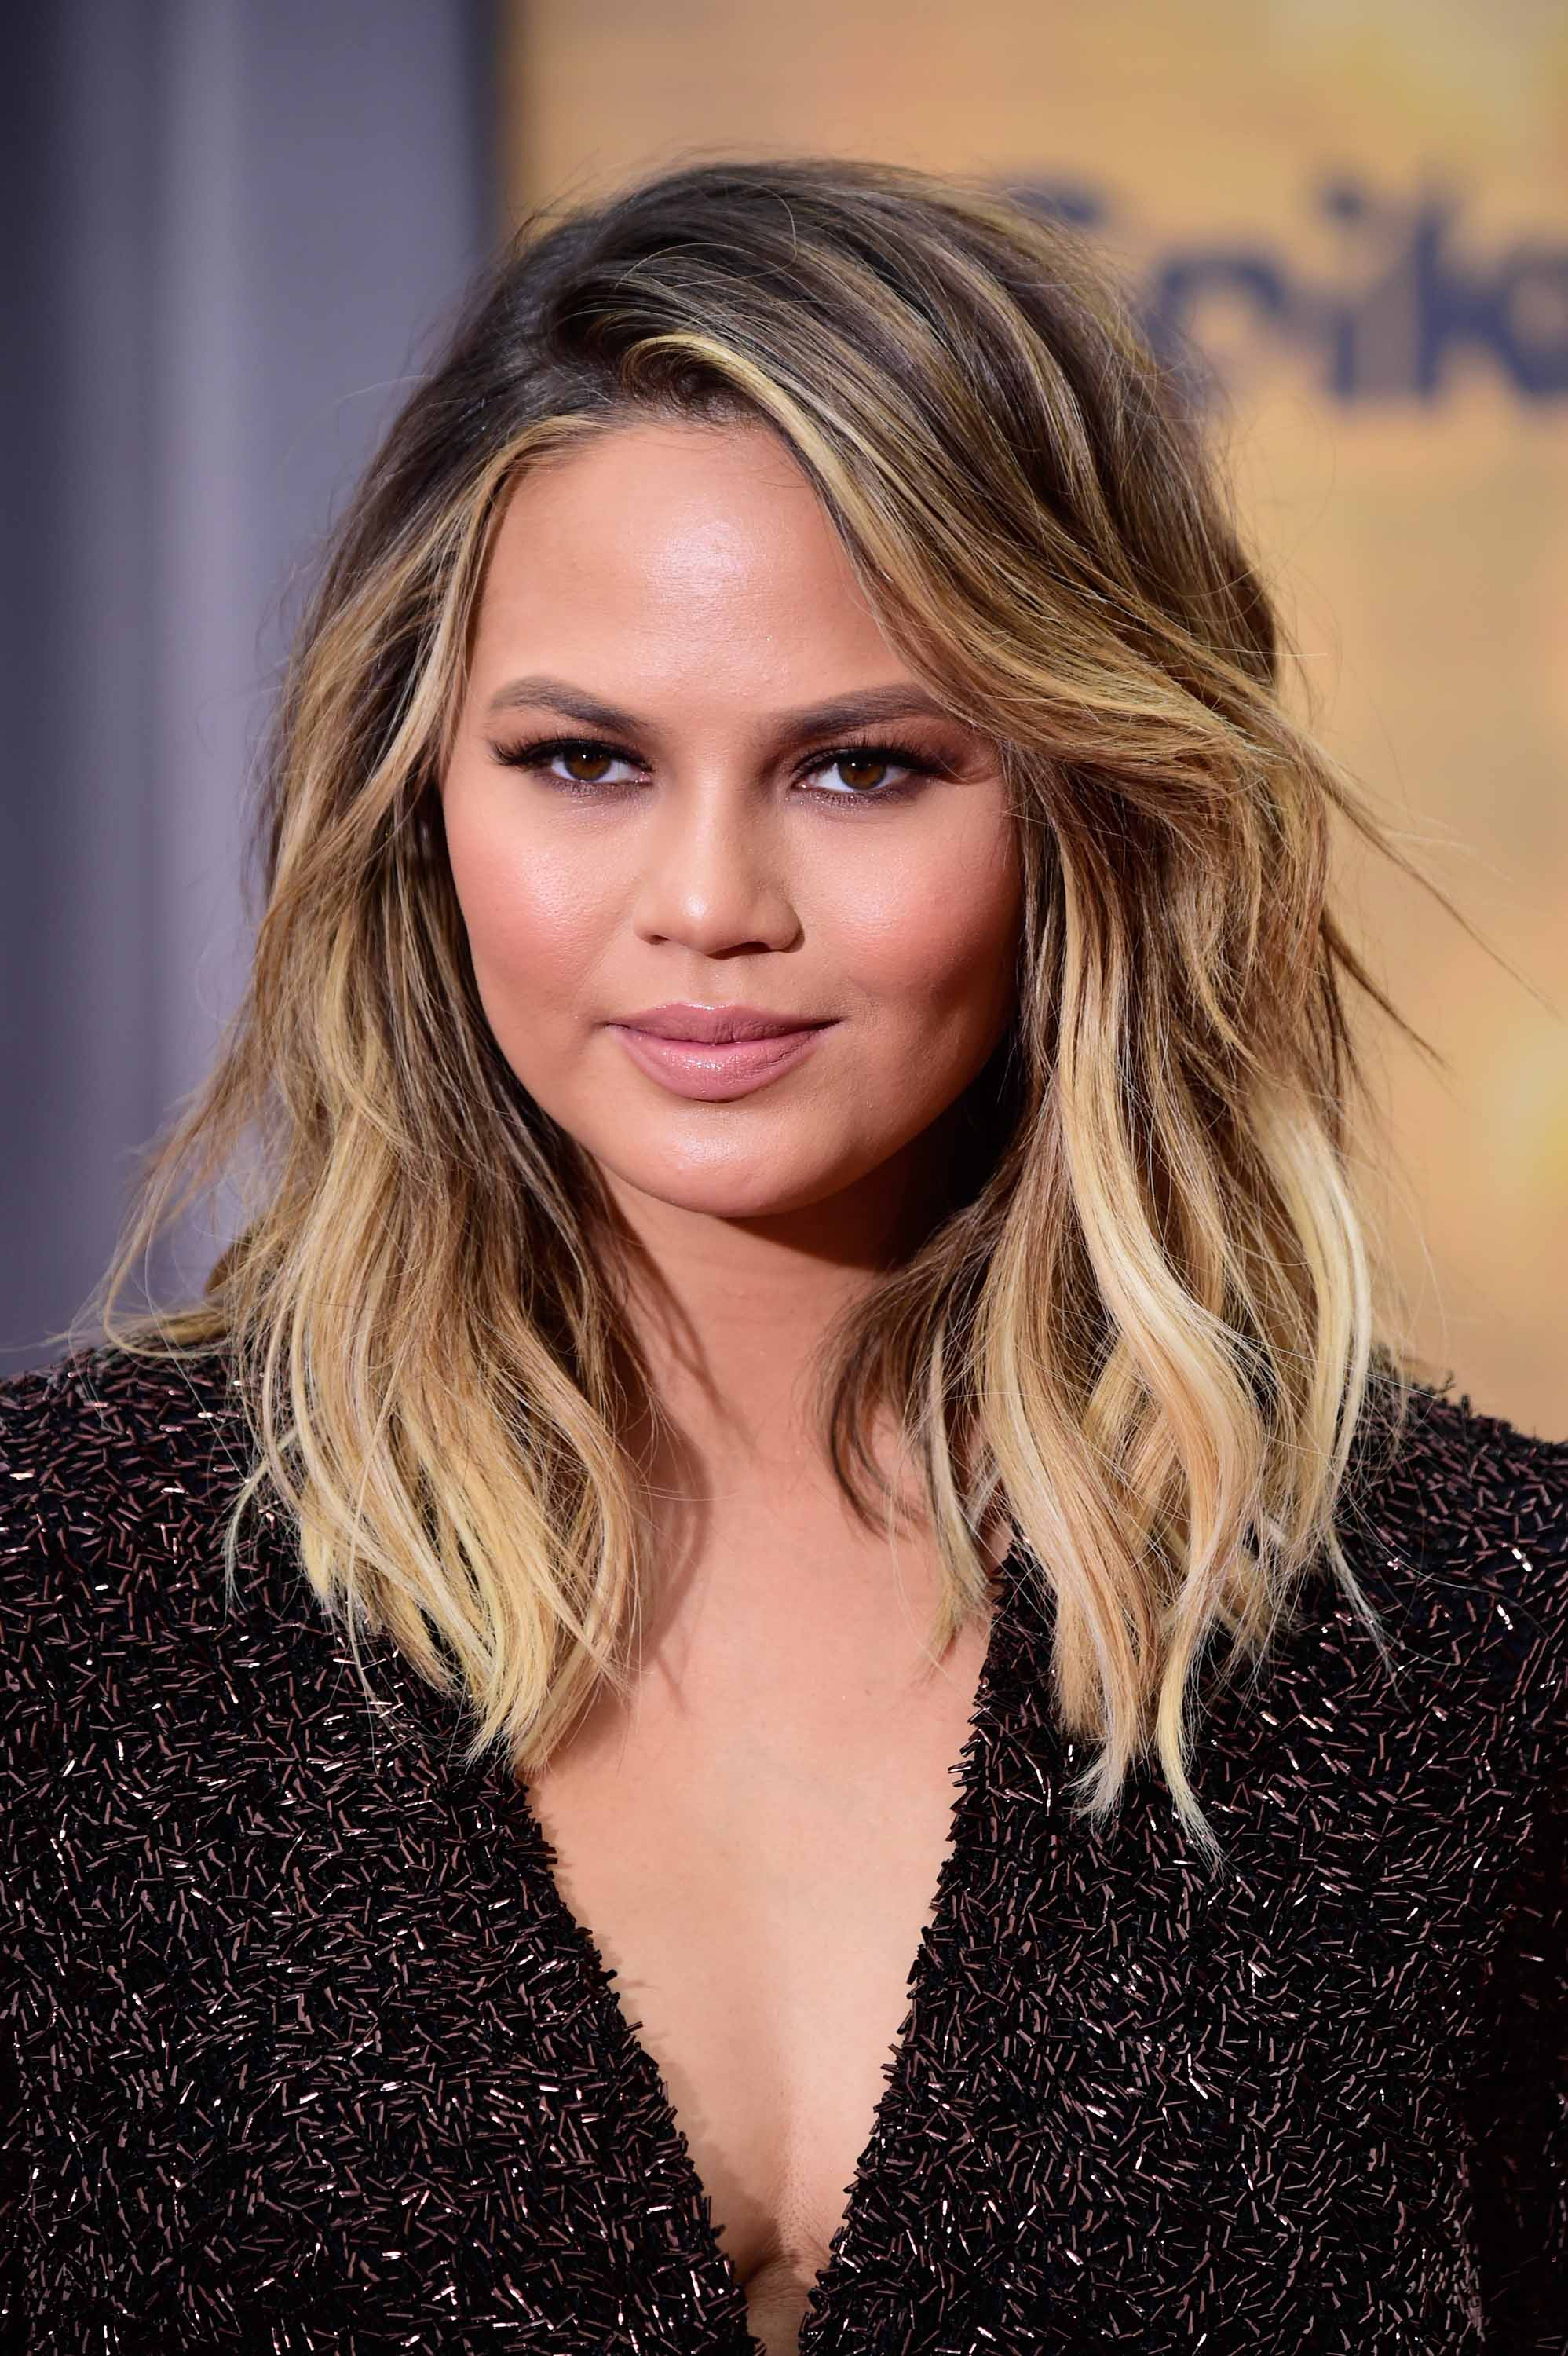 Colour inspiration: Brown hair with blonde highlights